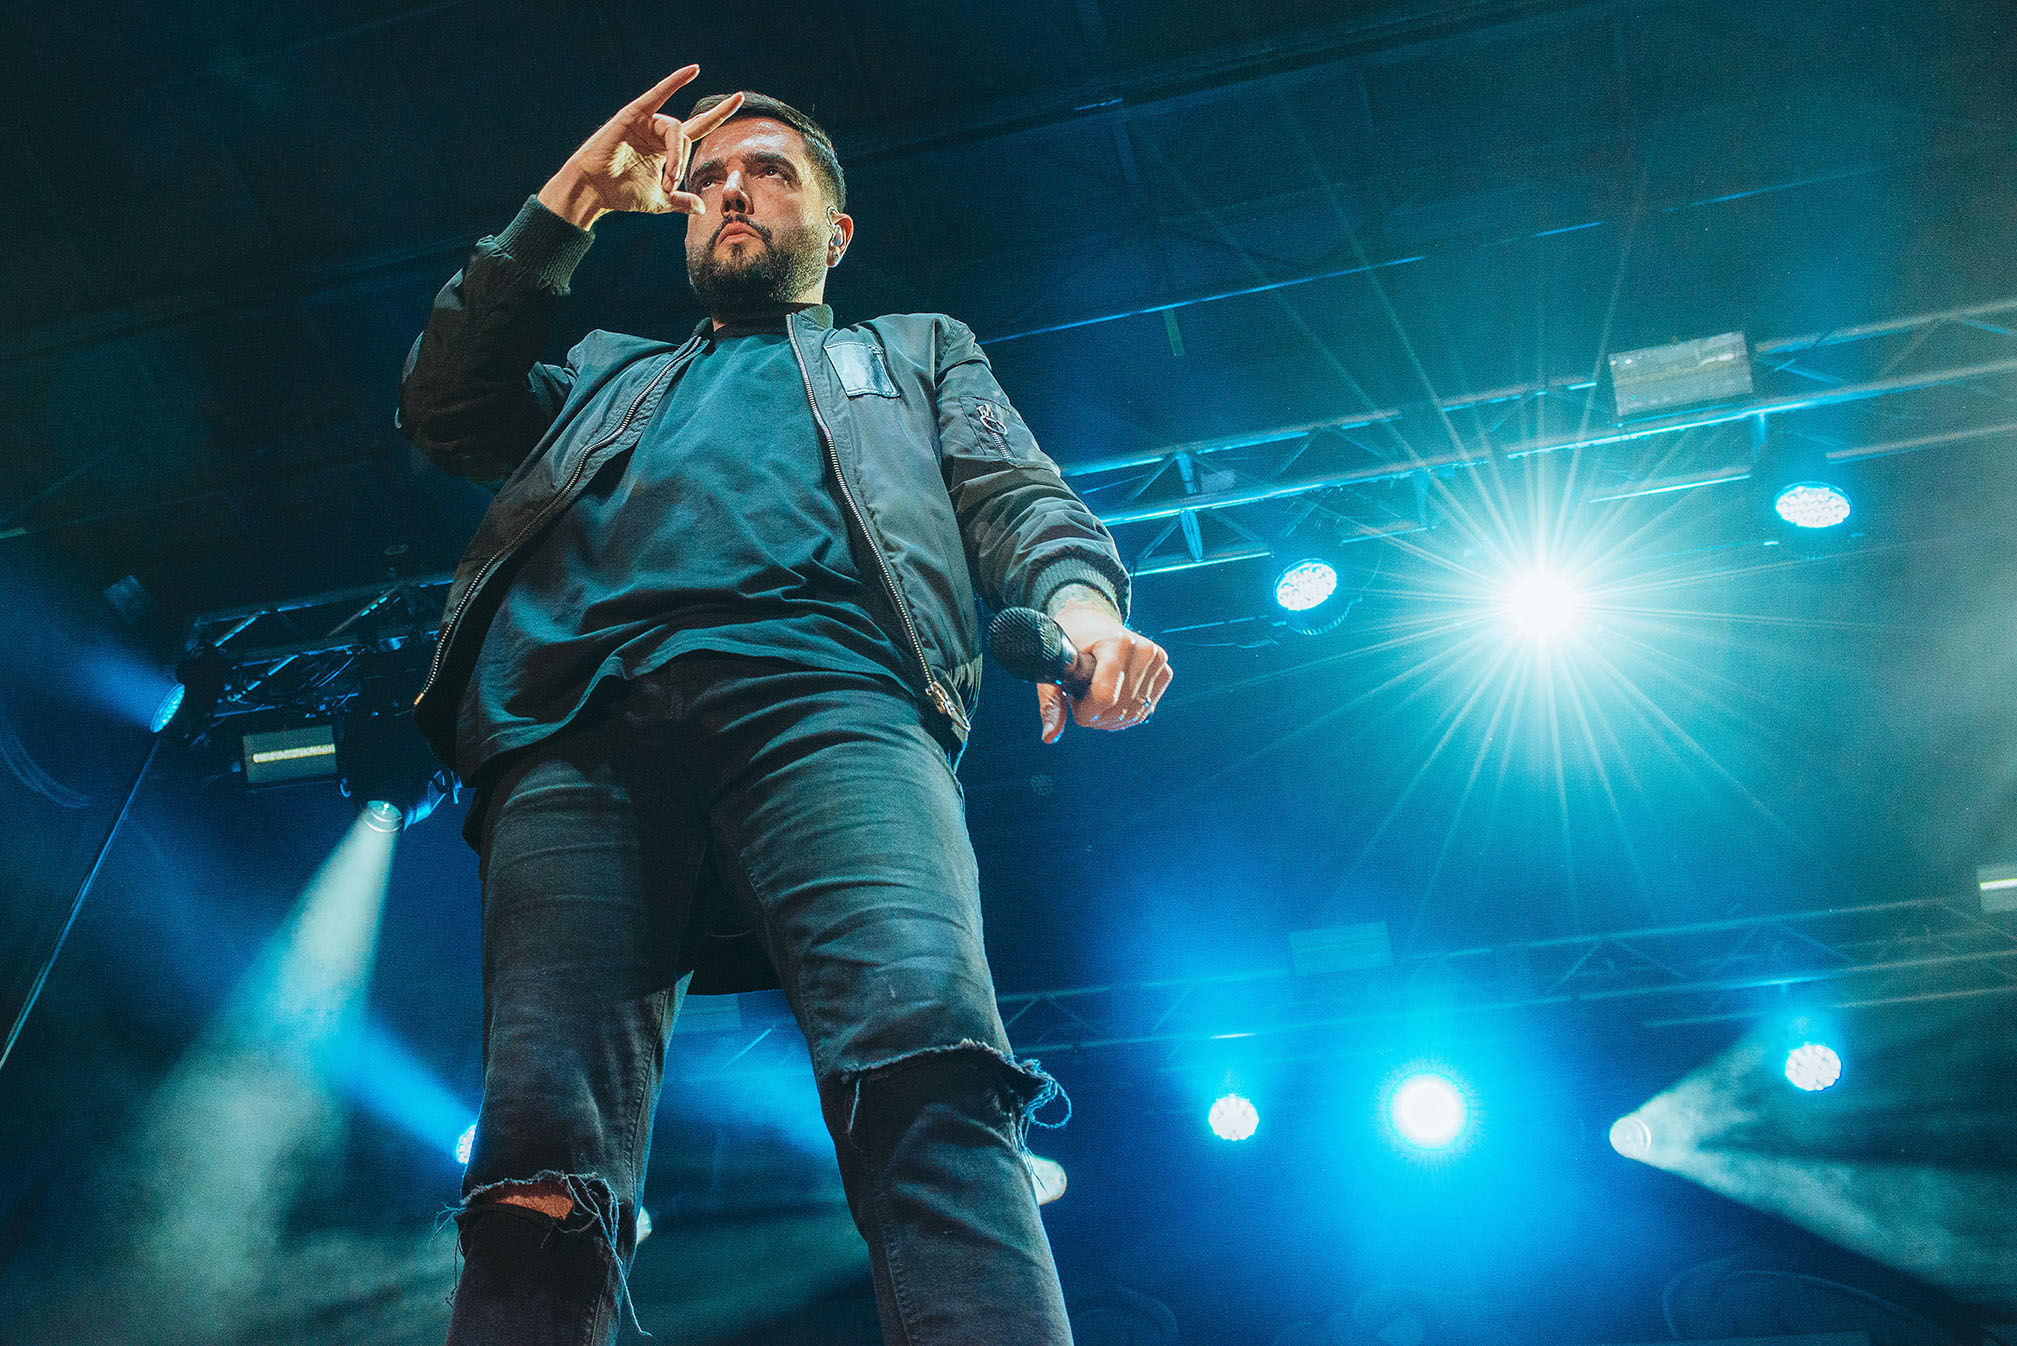 a day to remember ADTR Jeremy McKinnon lead singer band concert rock photo photography image